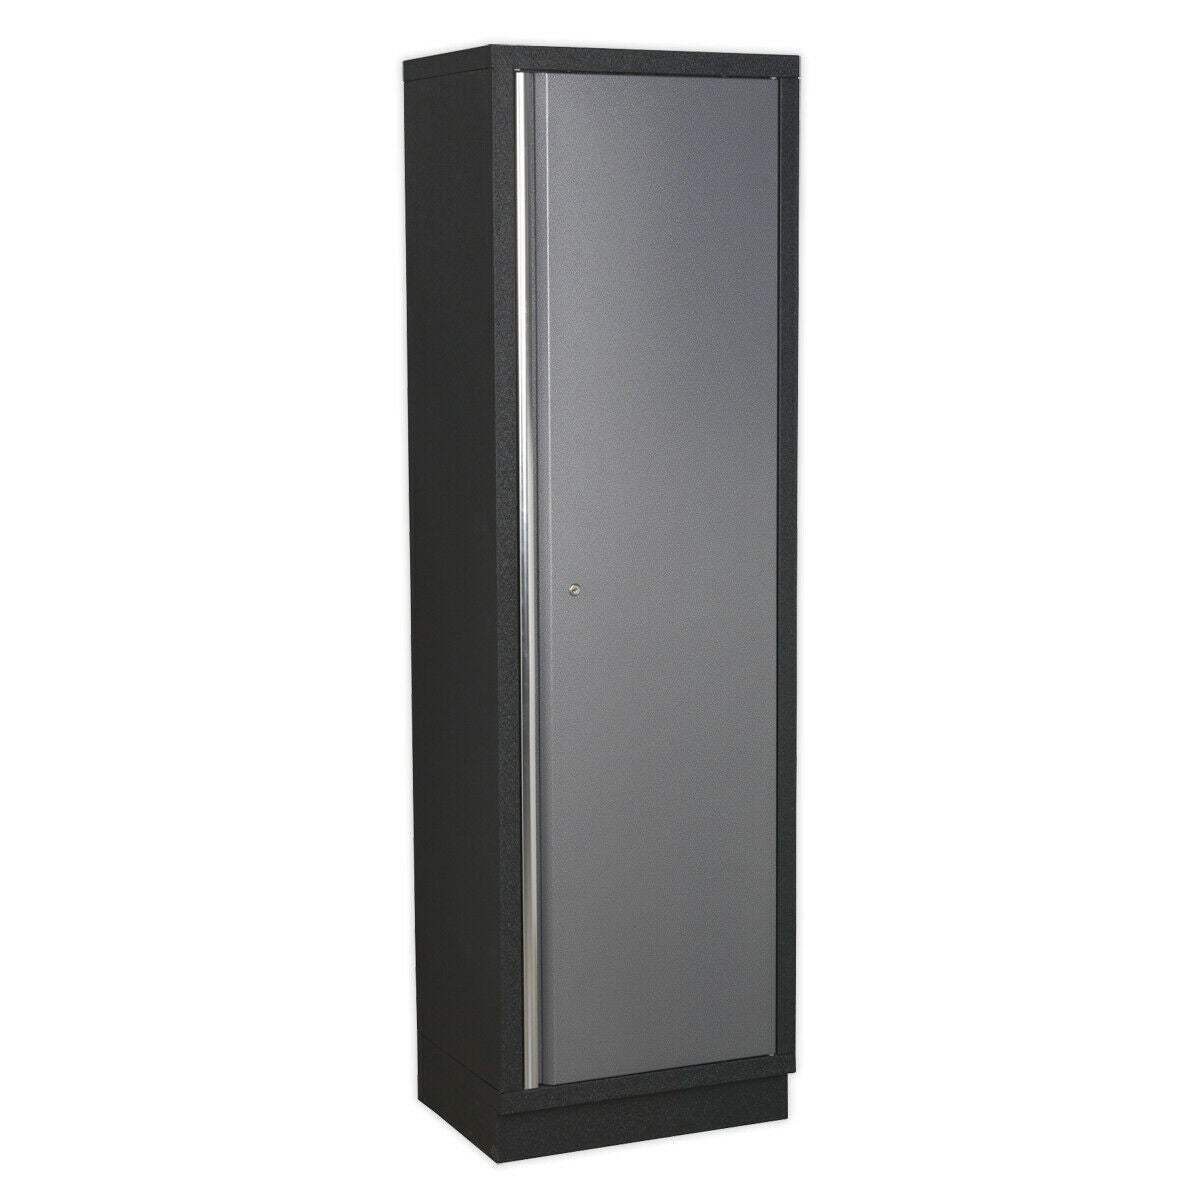 Sealey APMS55 Modular Floor Cabinet Full Height 600mm